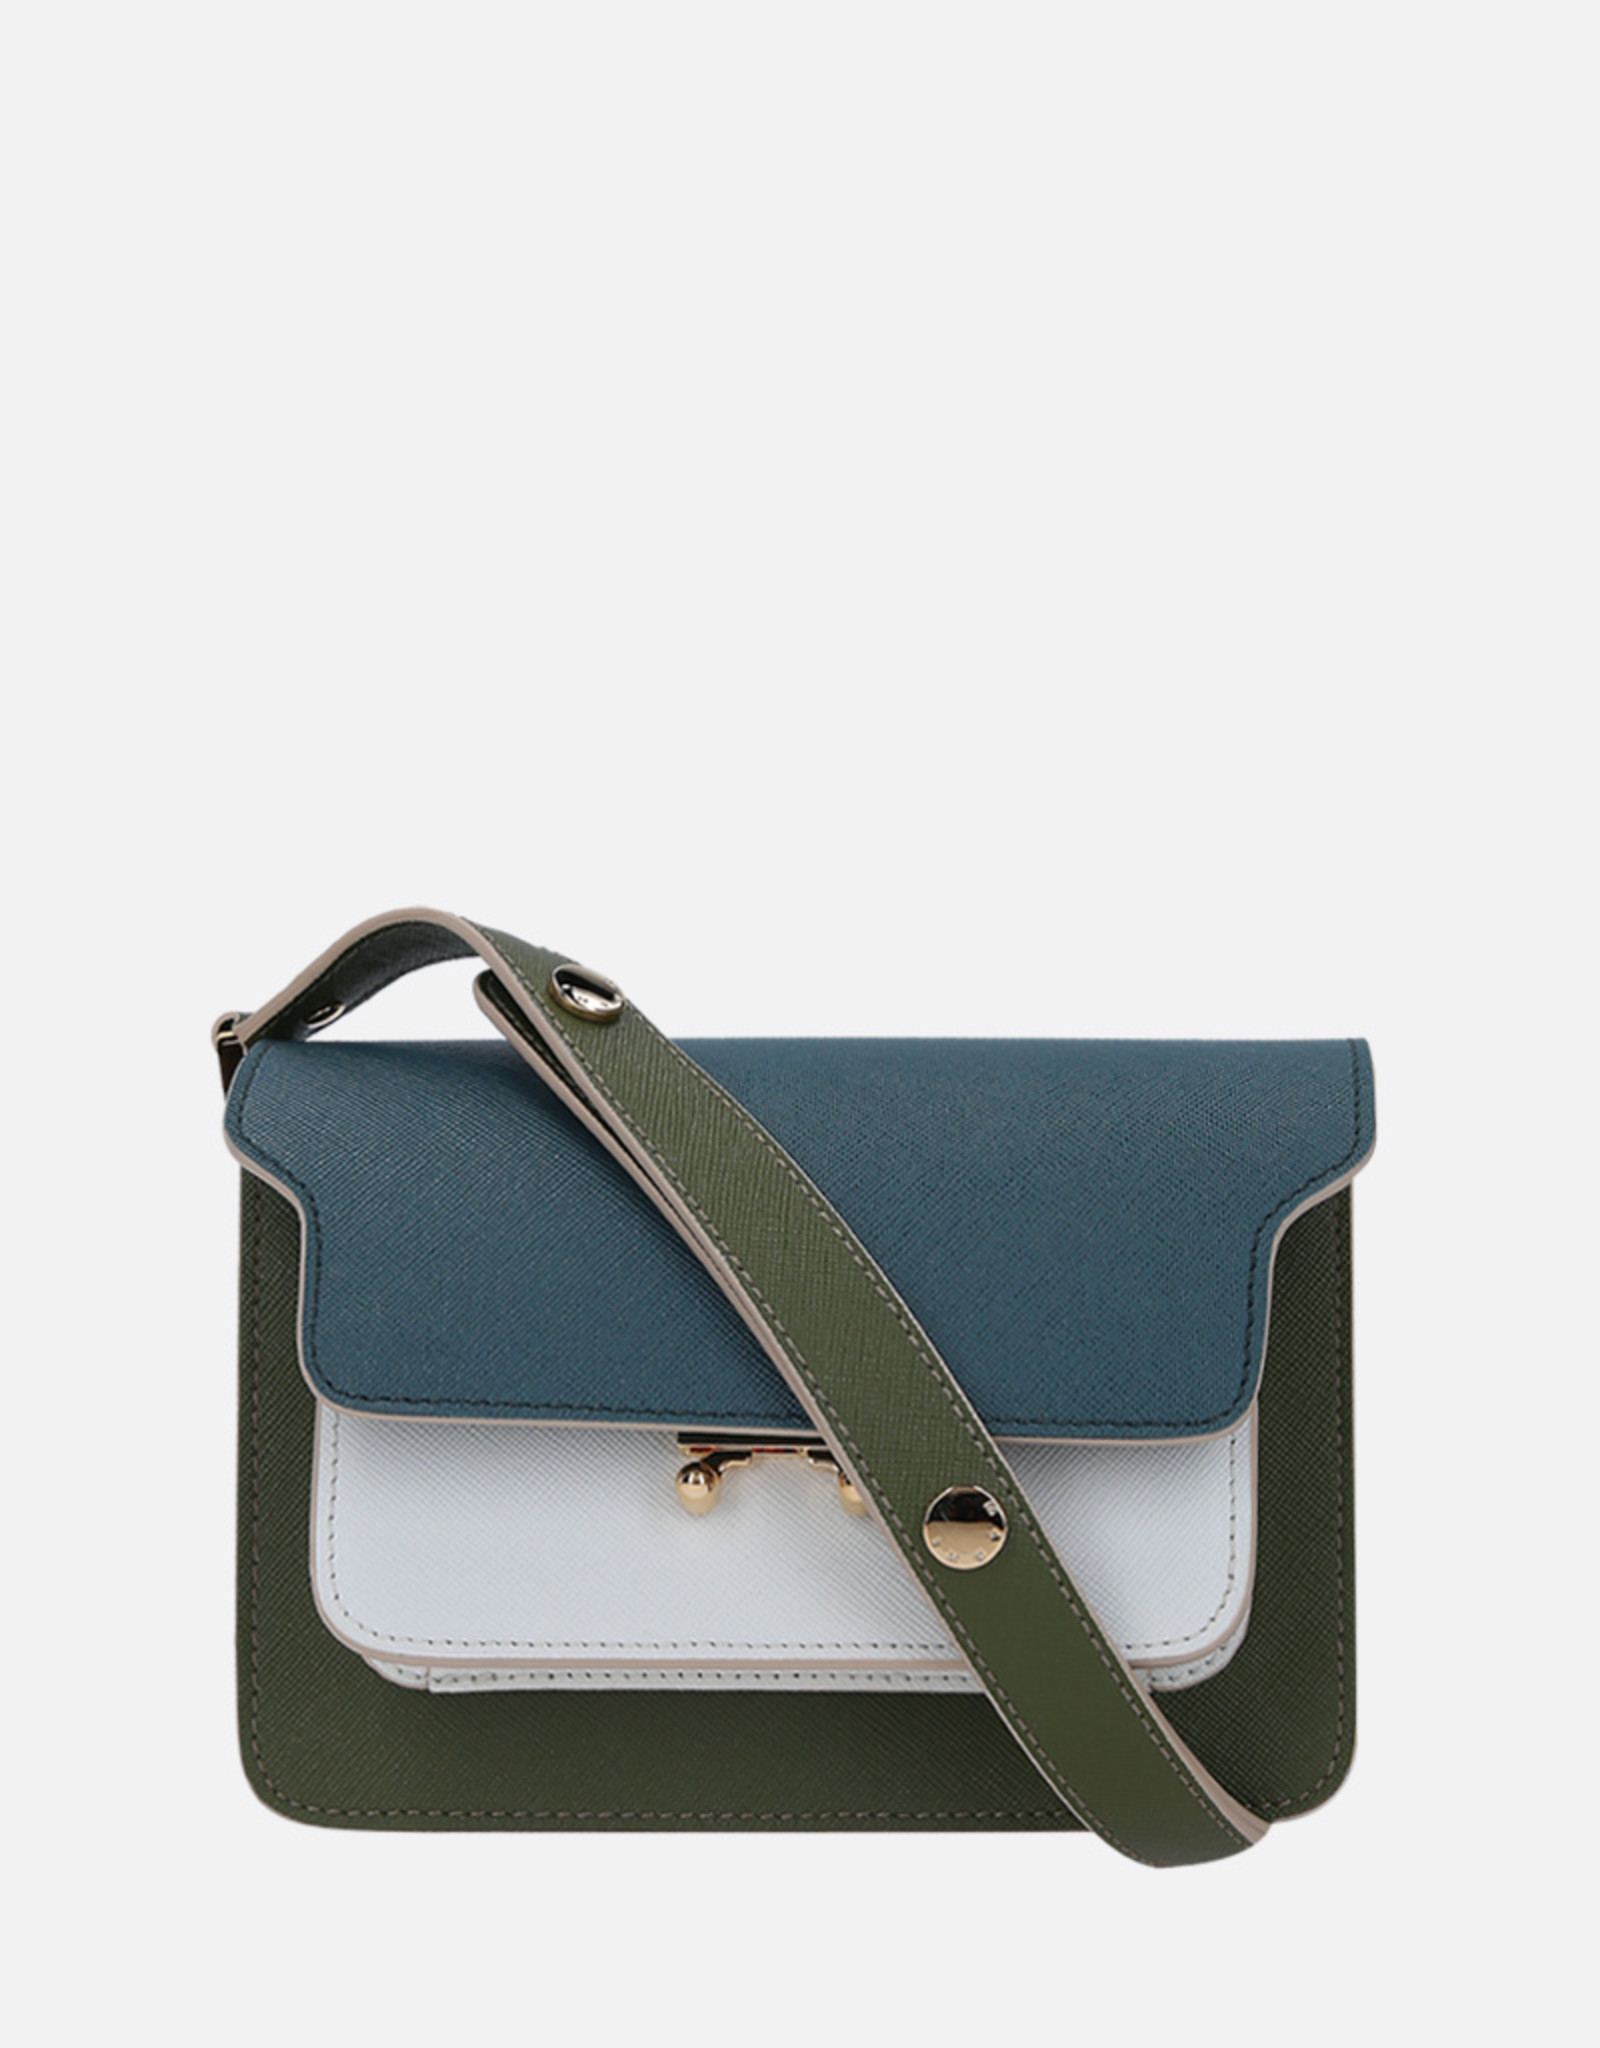 Marni Marni Trunk bag Small Green / White